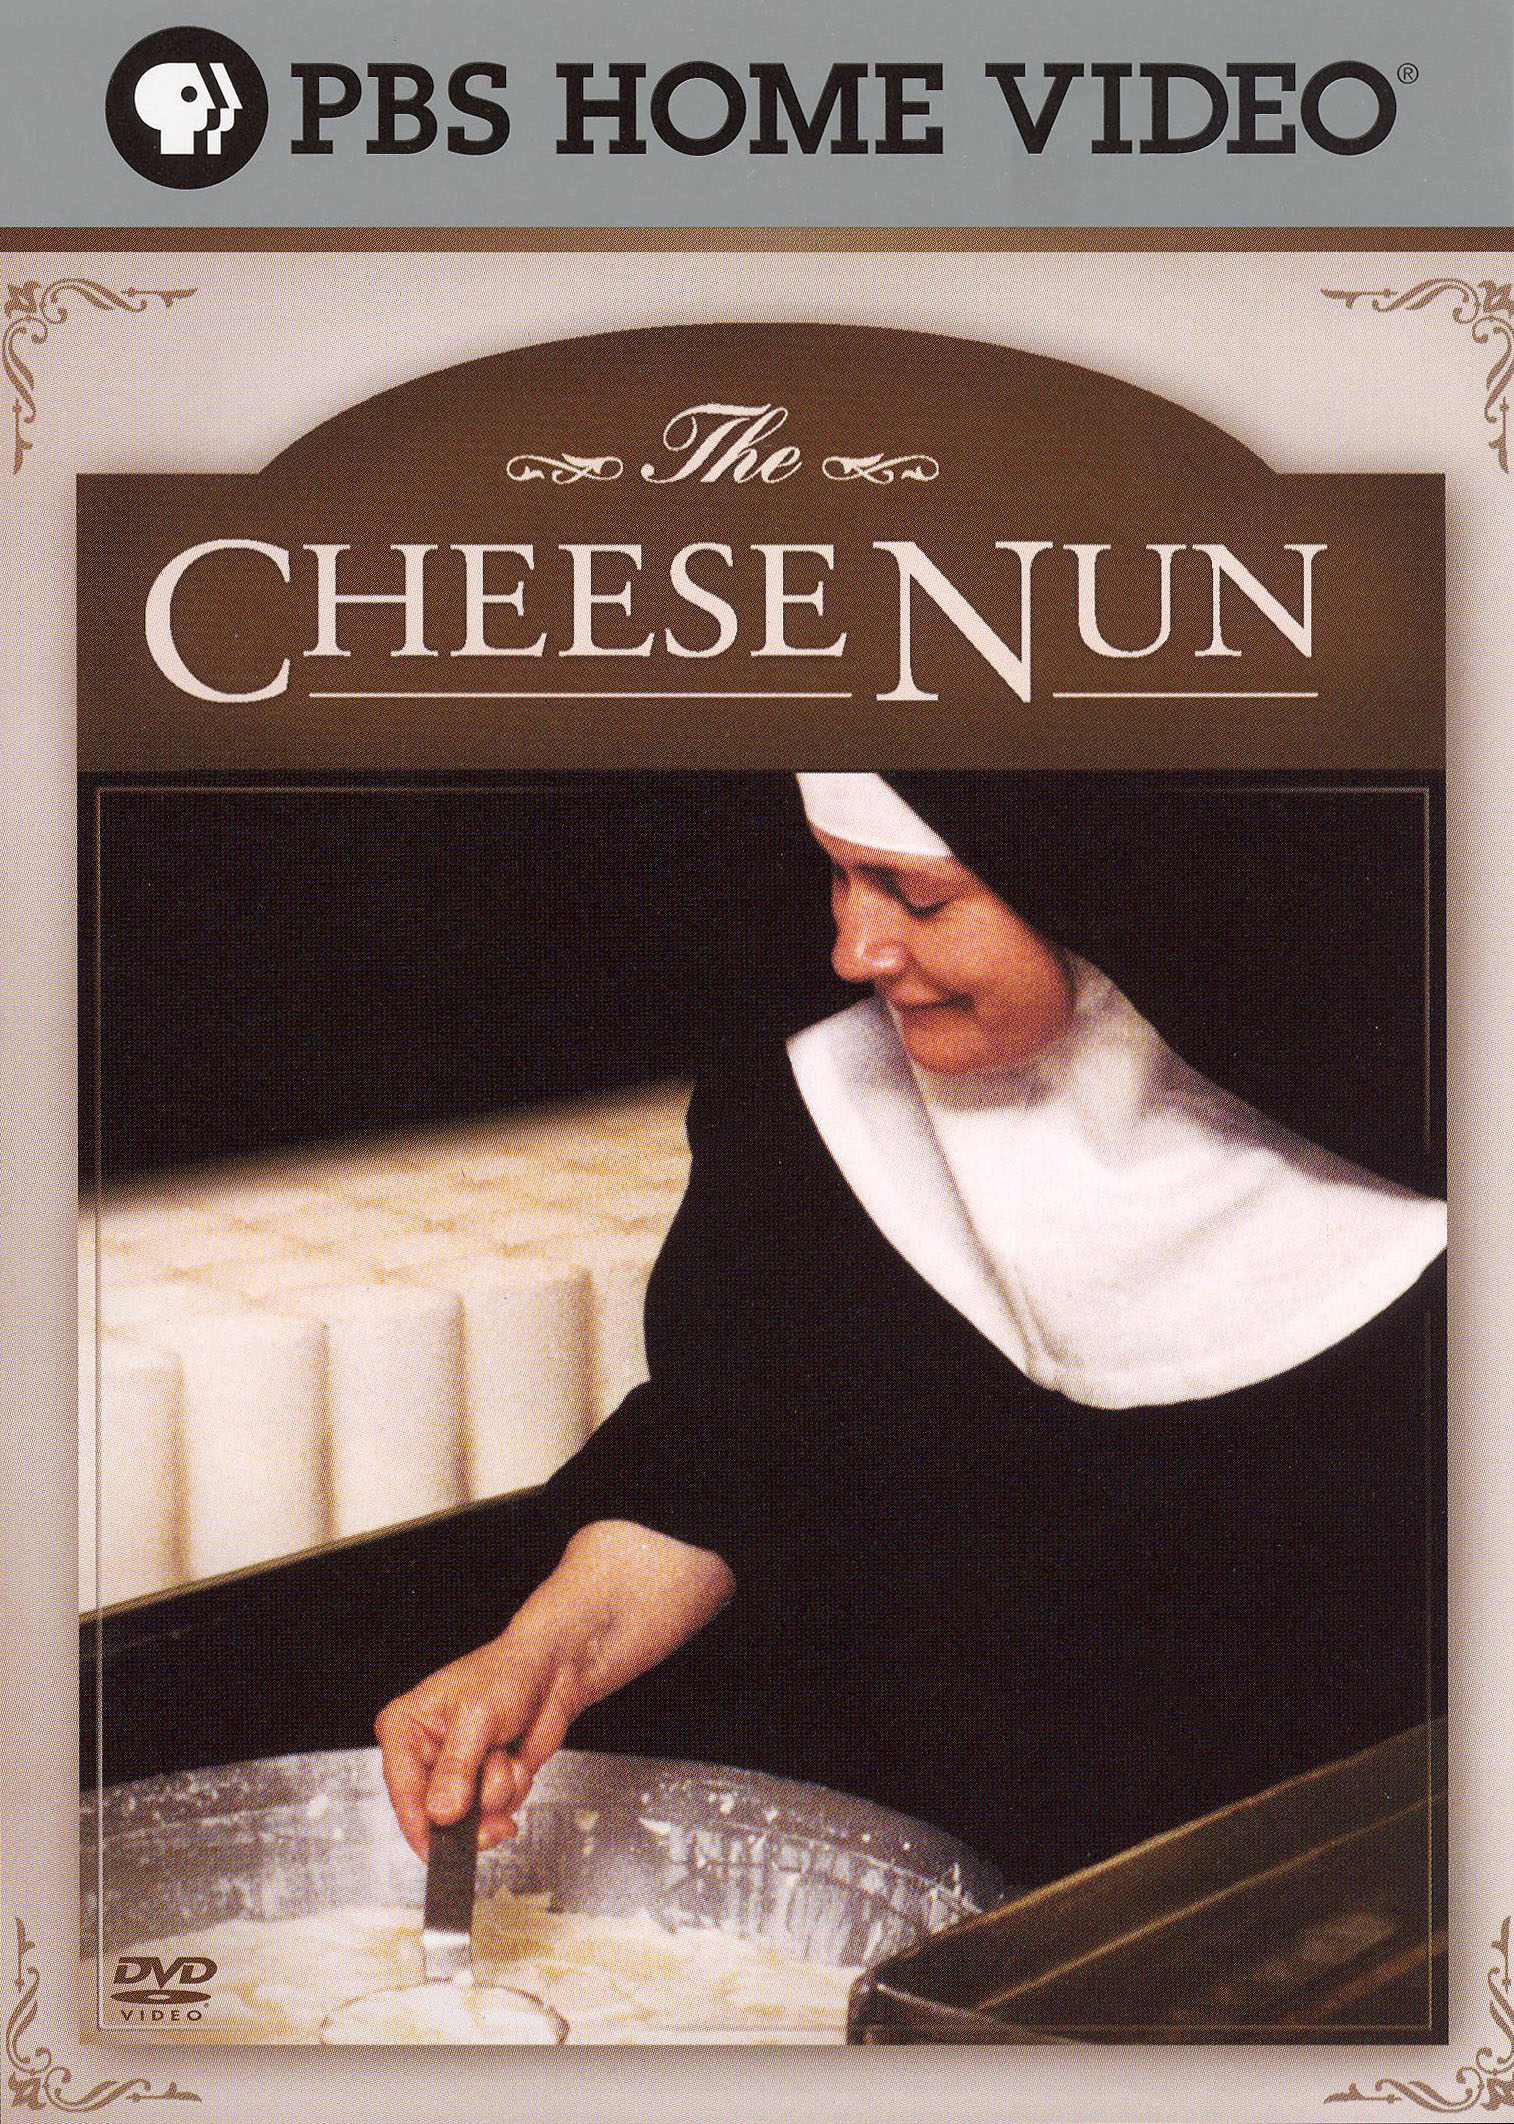 The Cheese Nun: Sister Noella's Voyage of Discovery